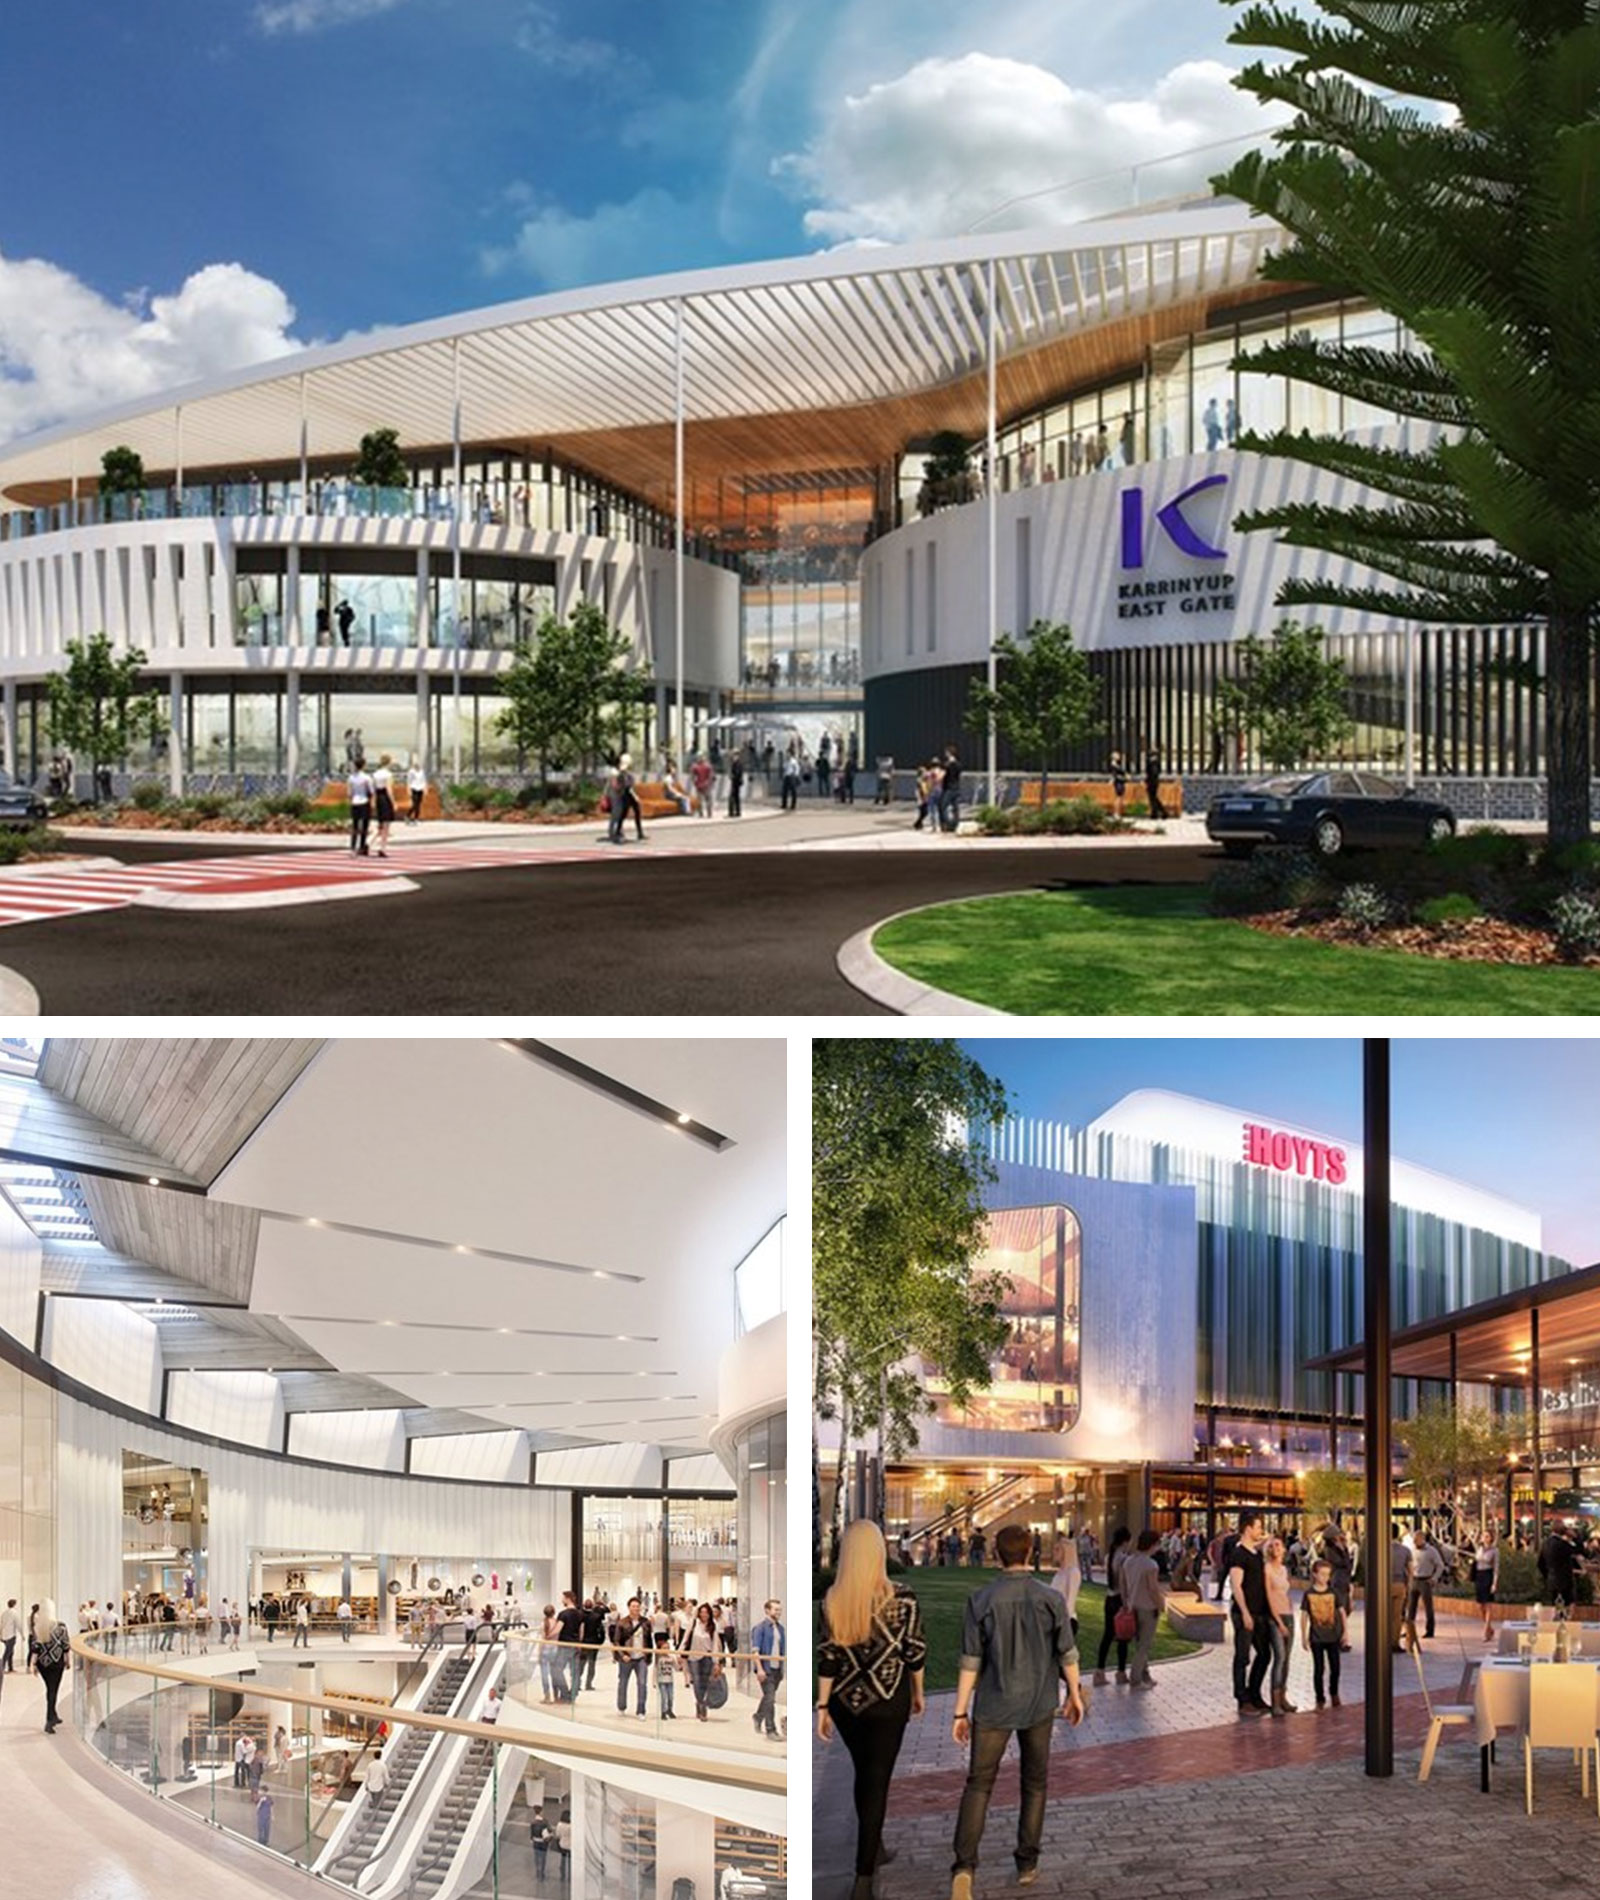 New additions to the Karrinyup Shopping Centre will include leisure, lifestyle and entertainment which will include a new state-of-the-art 10 screen Hoyts cinema.